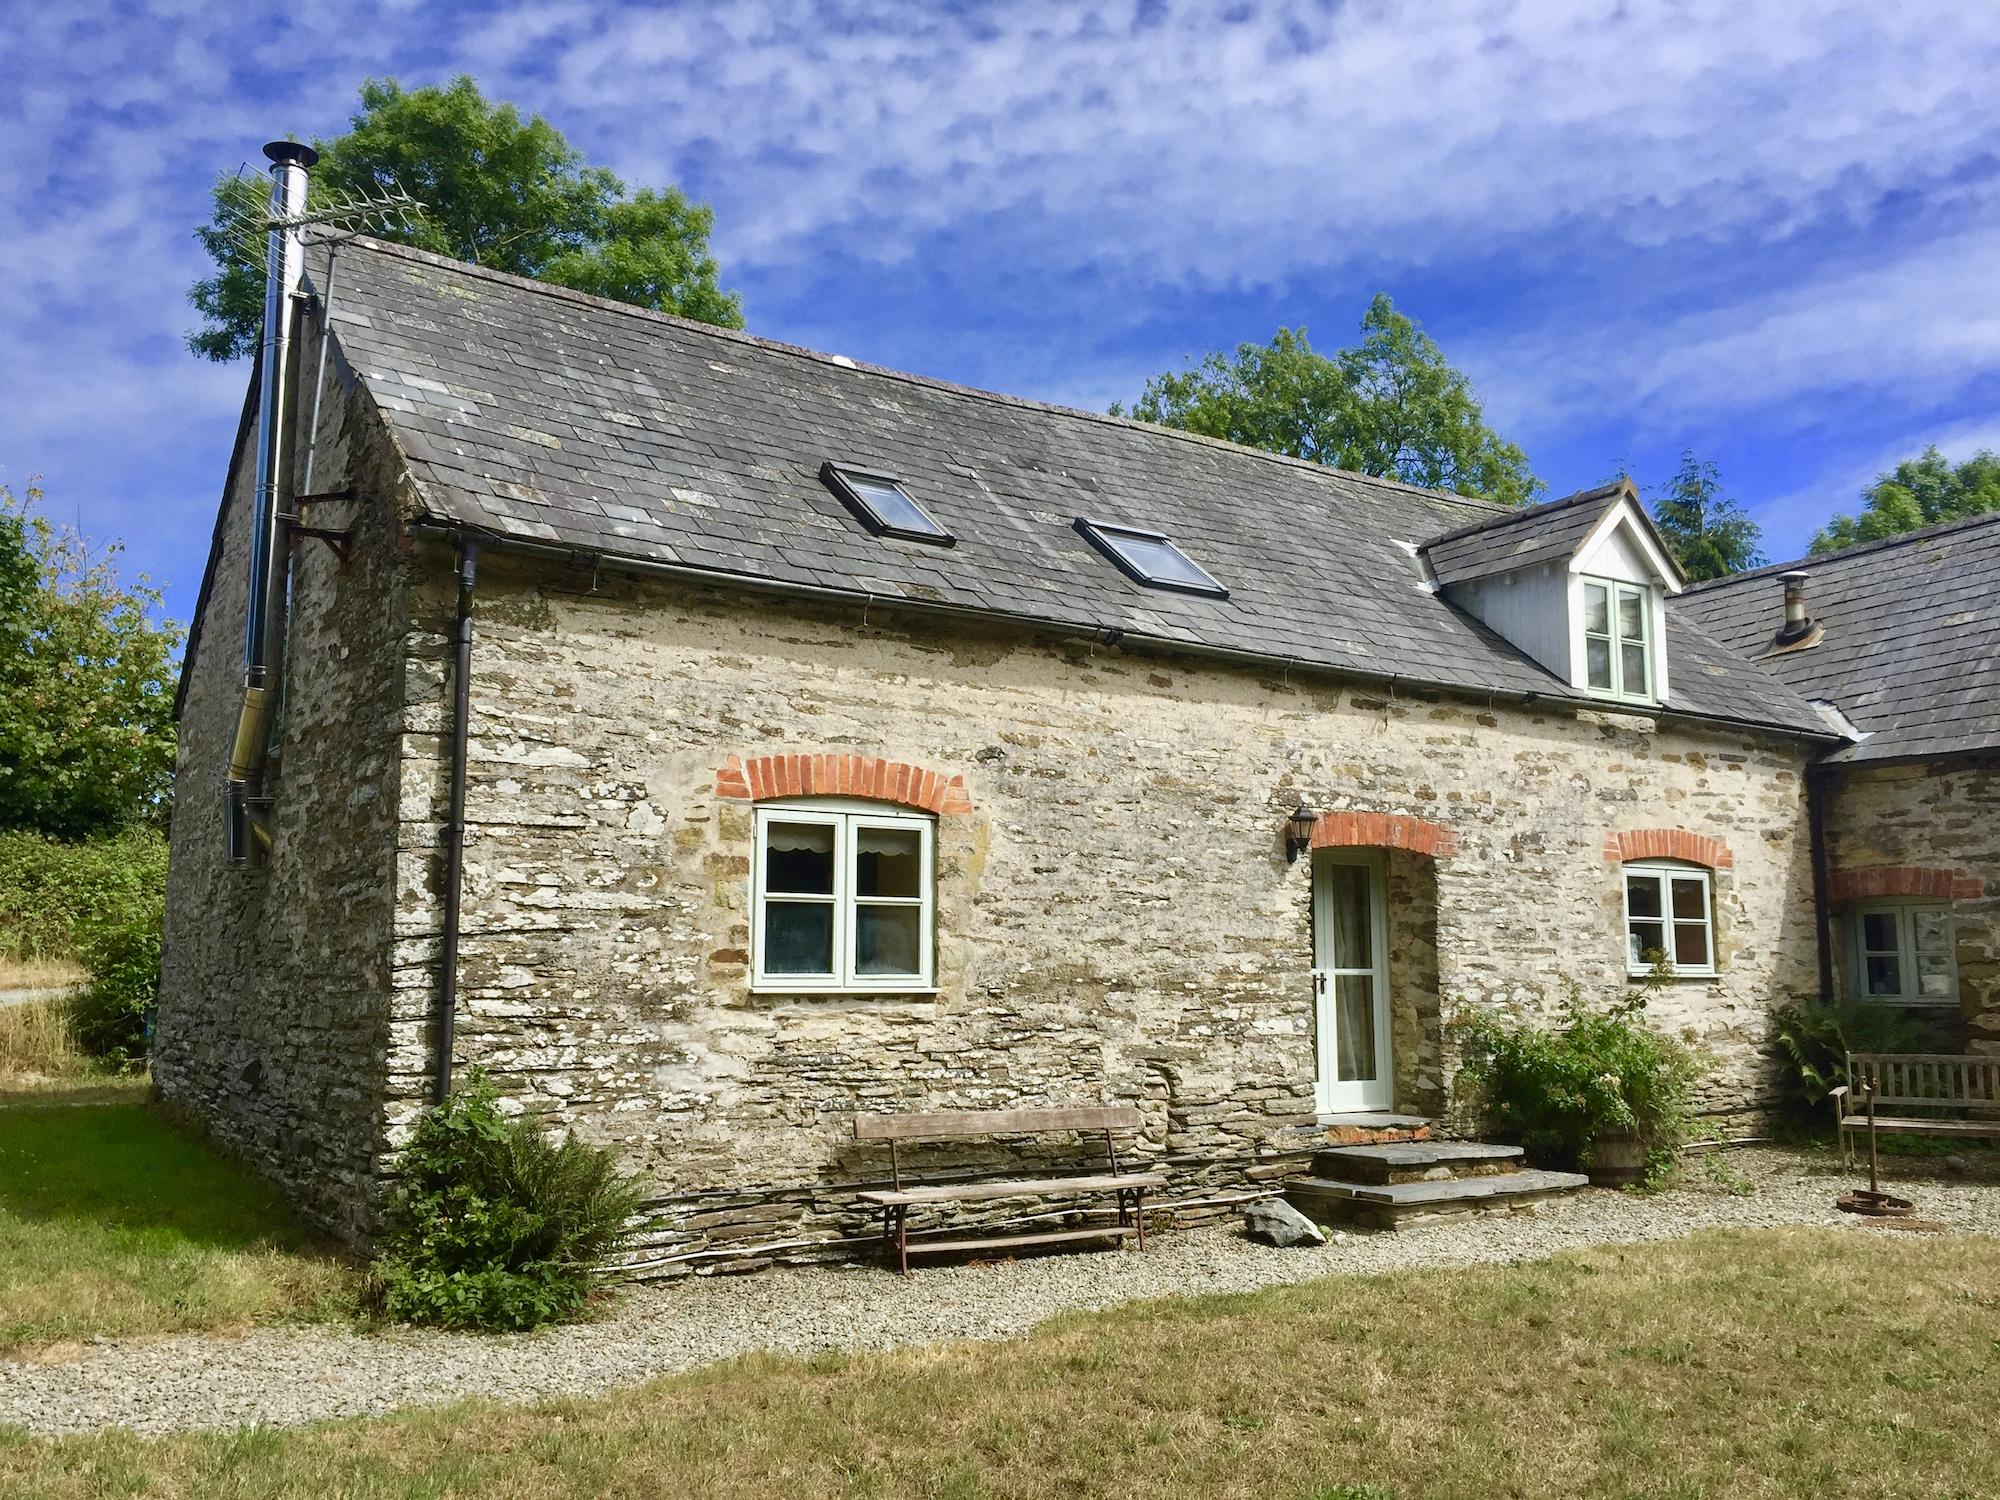 Self-Catering in Ceredigion holidays at Cool Places